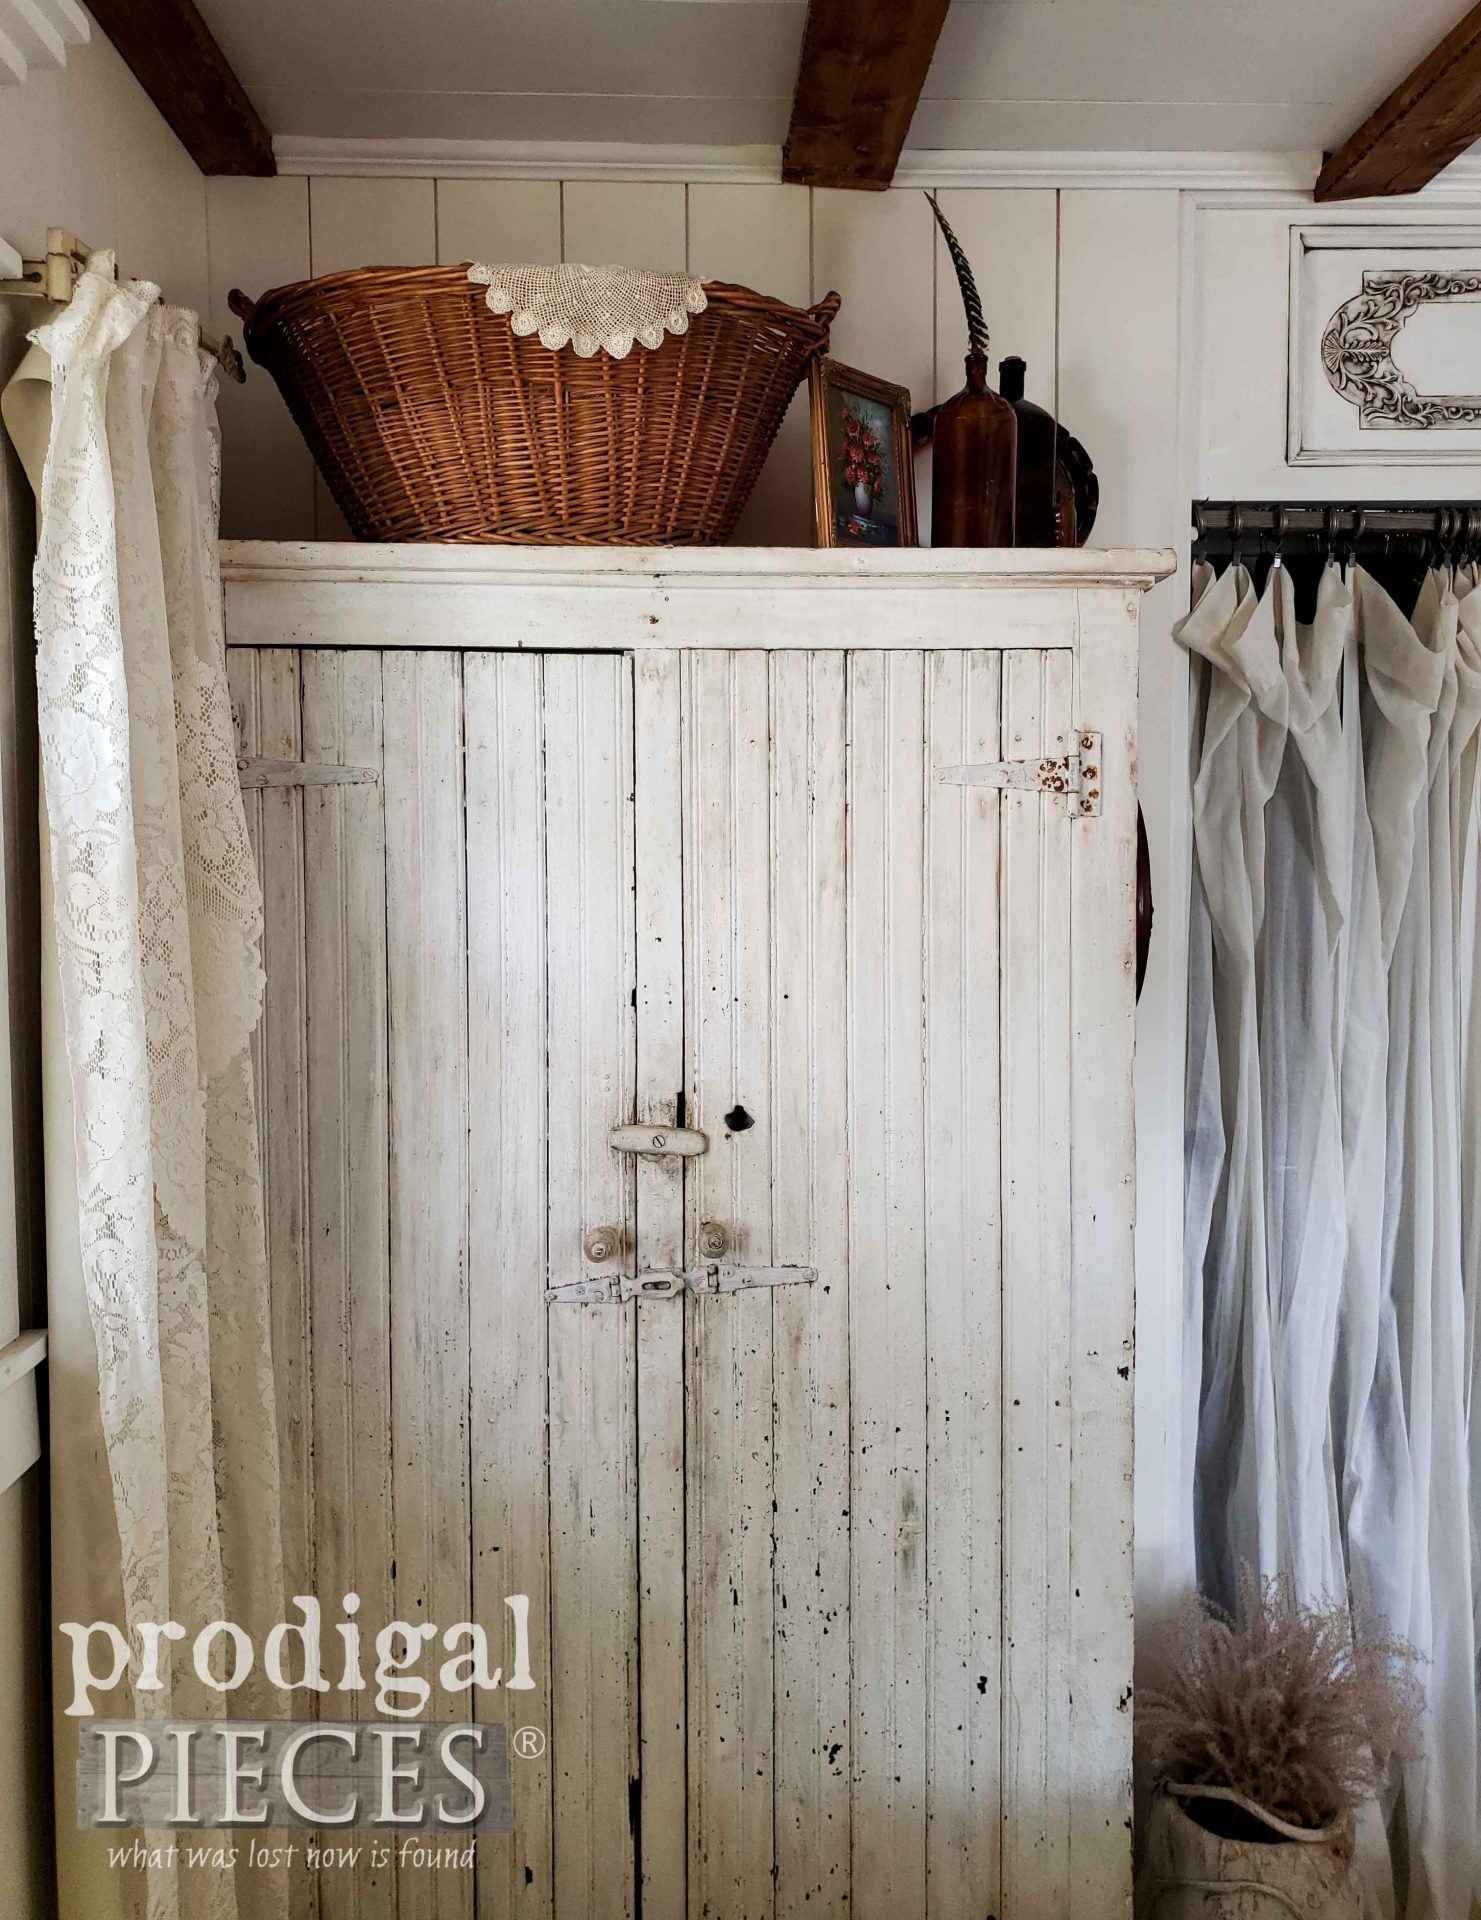 Chippy White Farmhouse Cupboard used as Armoire in Bedroom by Prodigal Pieces | prodigalpieces.com #prodigalpieces #home #farmhouse #bedroom #homedecor